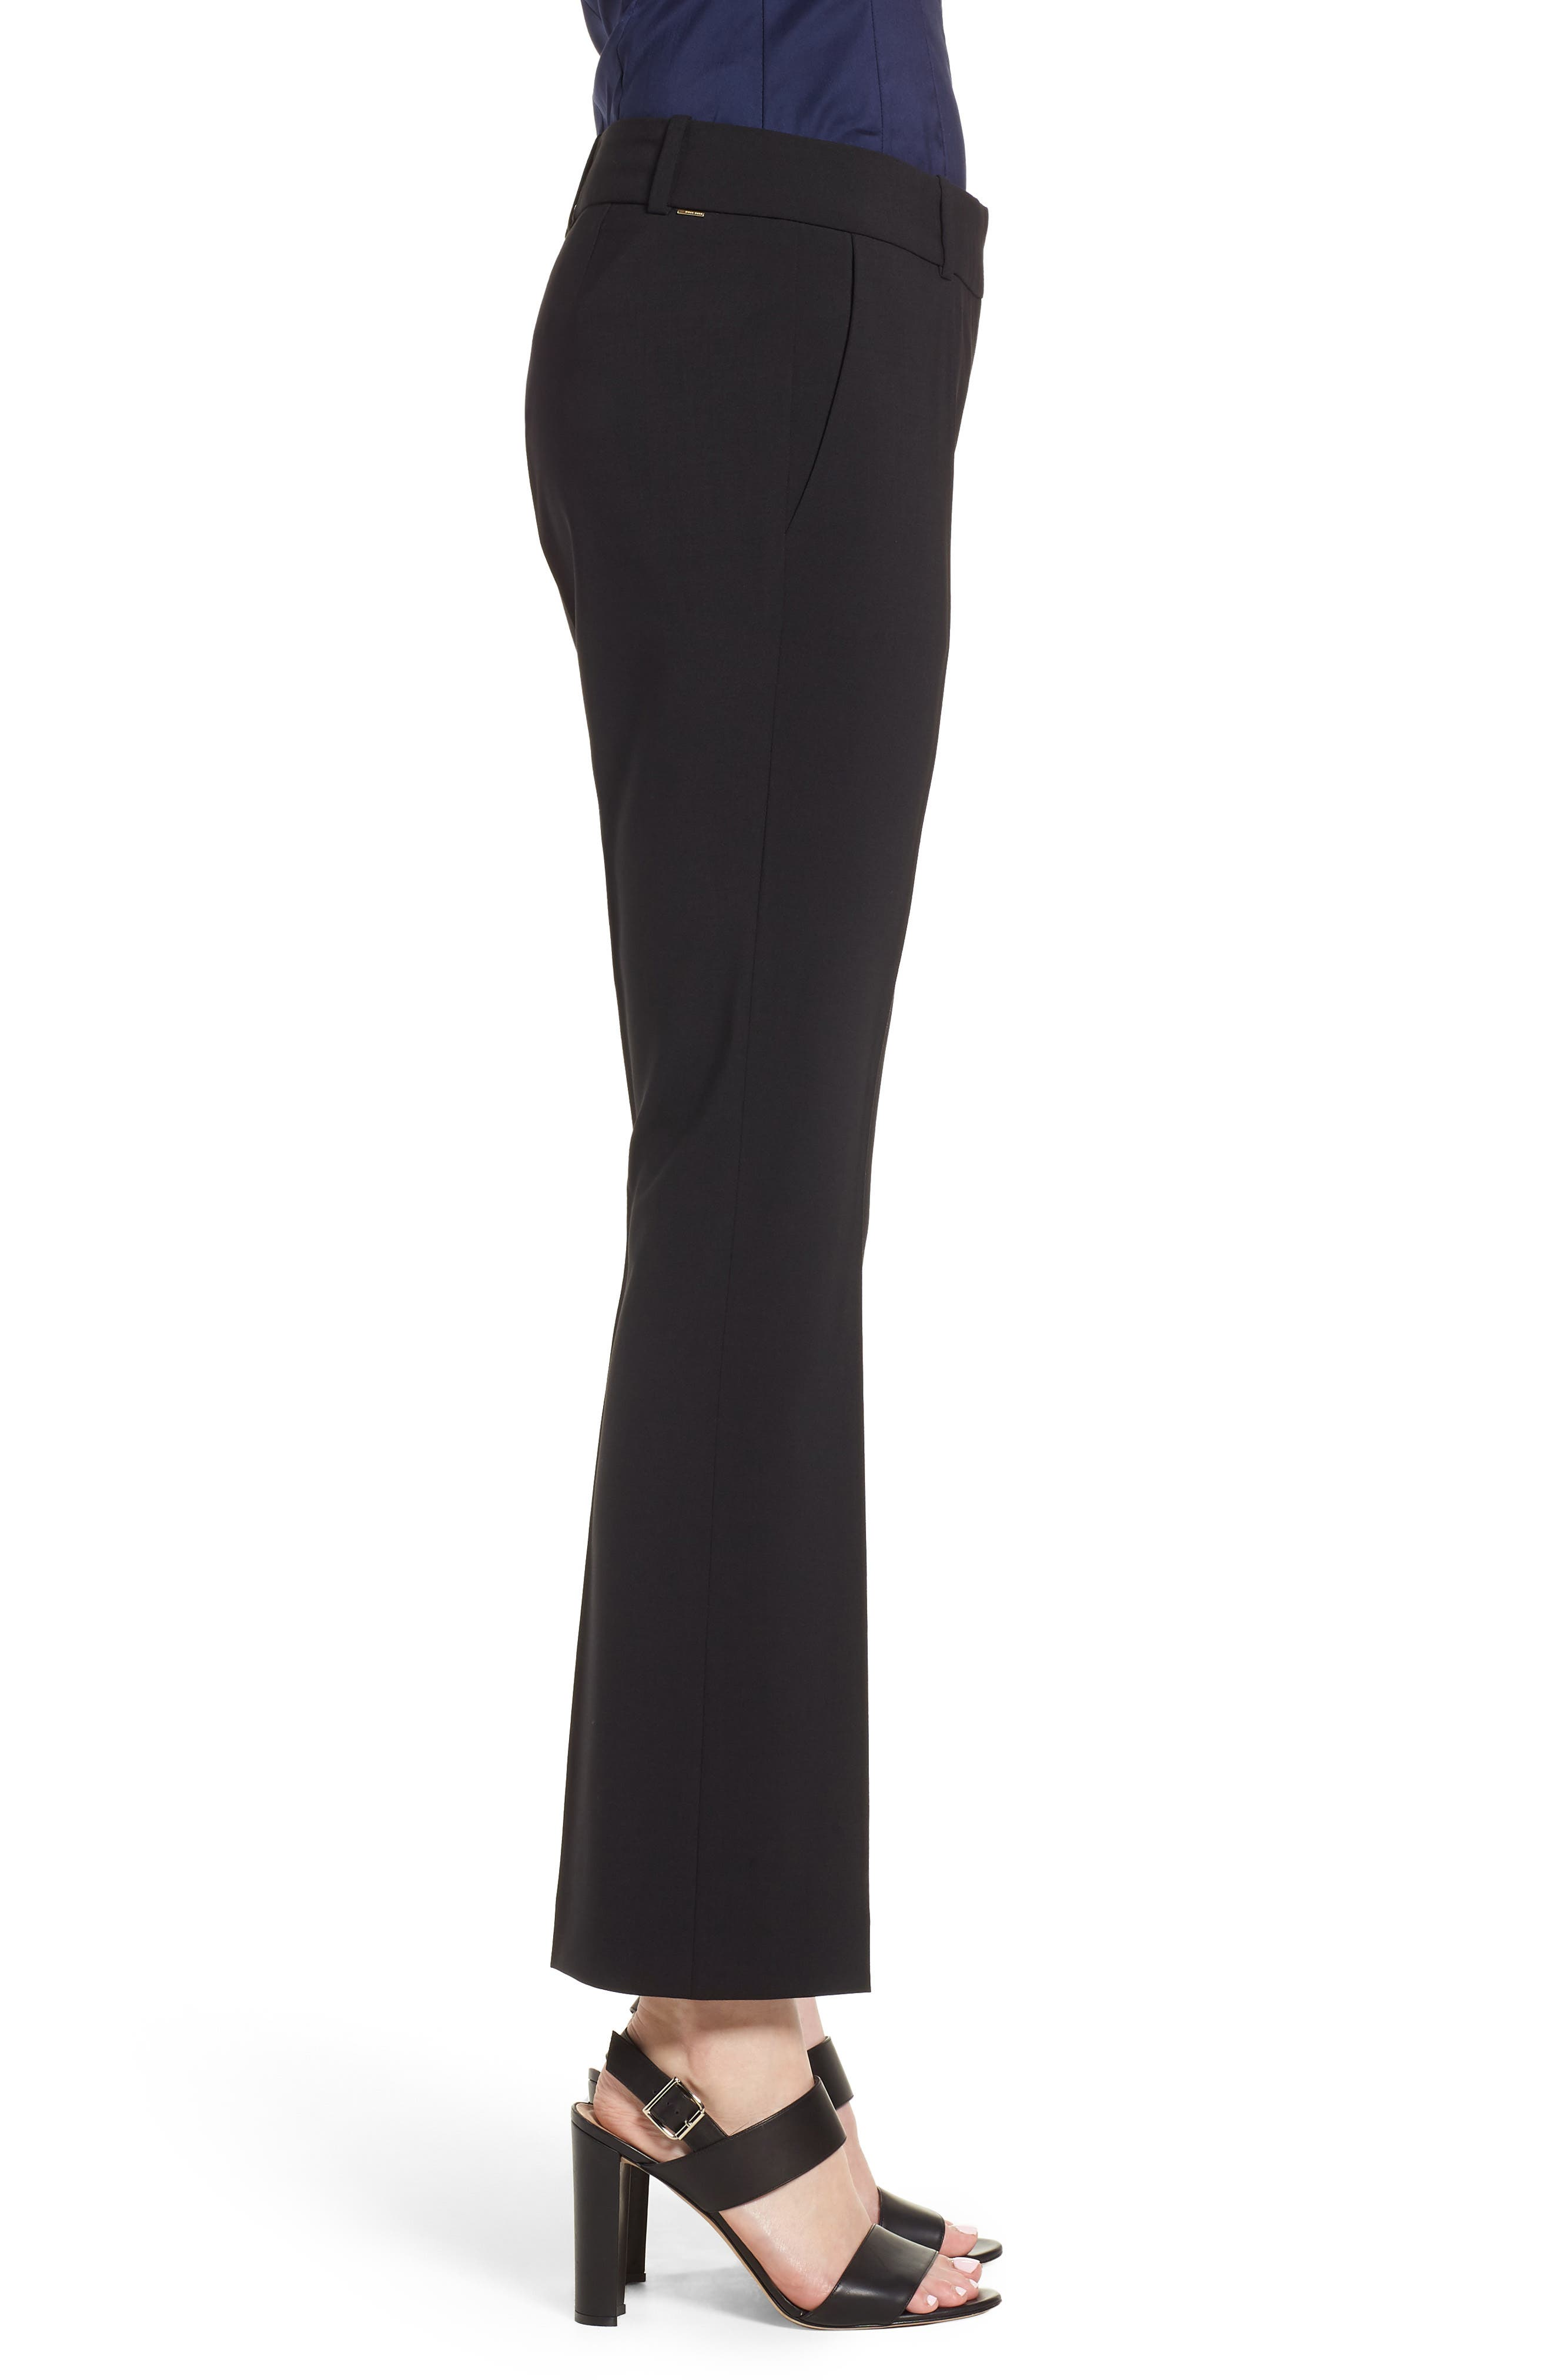 Talenara Tropical Stretch Wool Ankle Trousers,                             Alternate thumbnail 3, color,                             001